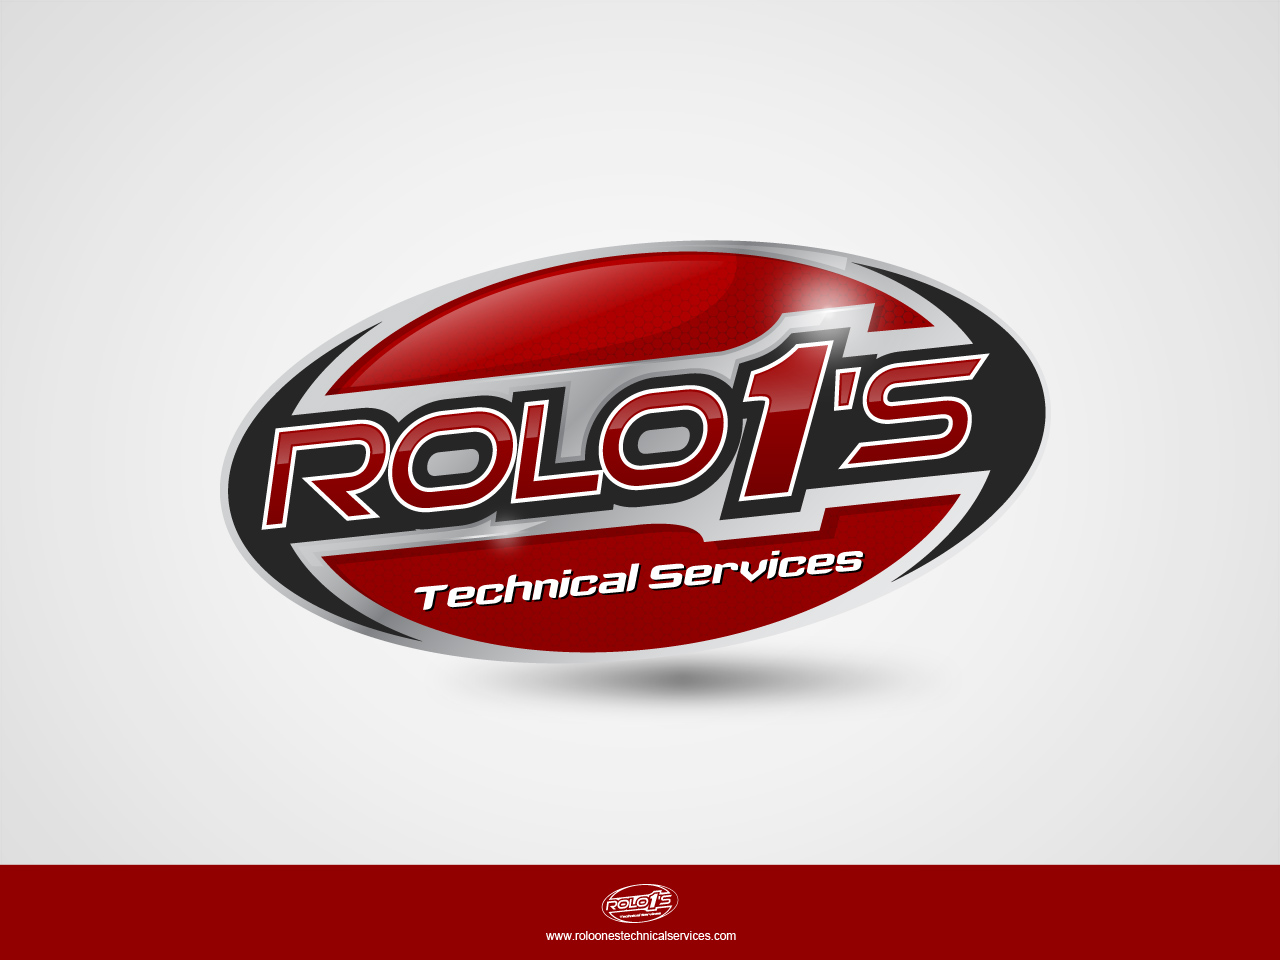 Logo Design by jpbituin - Entry No. 32 in the Logo Design Contest Inspiring Logo Design for Rolo1's Technical Services.